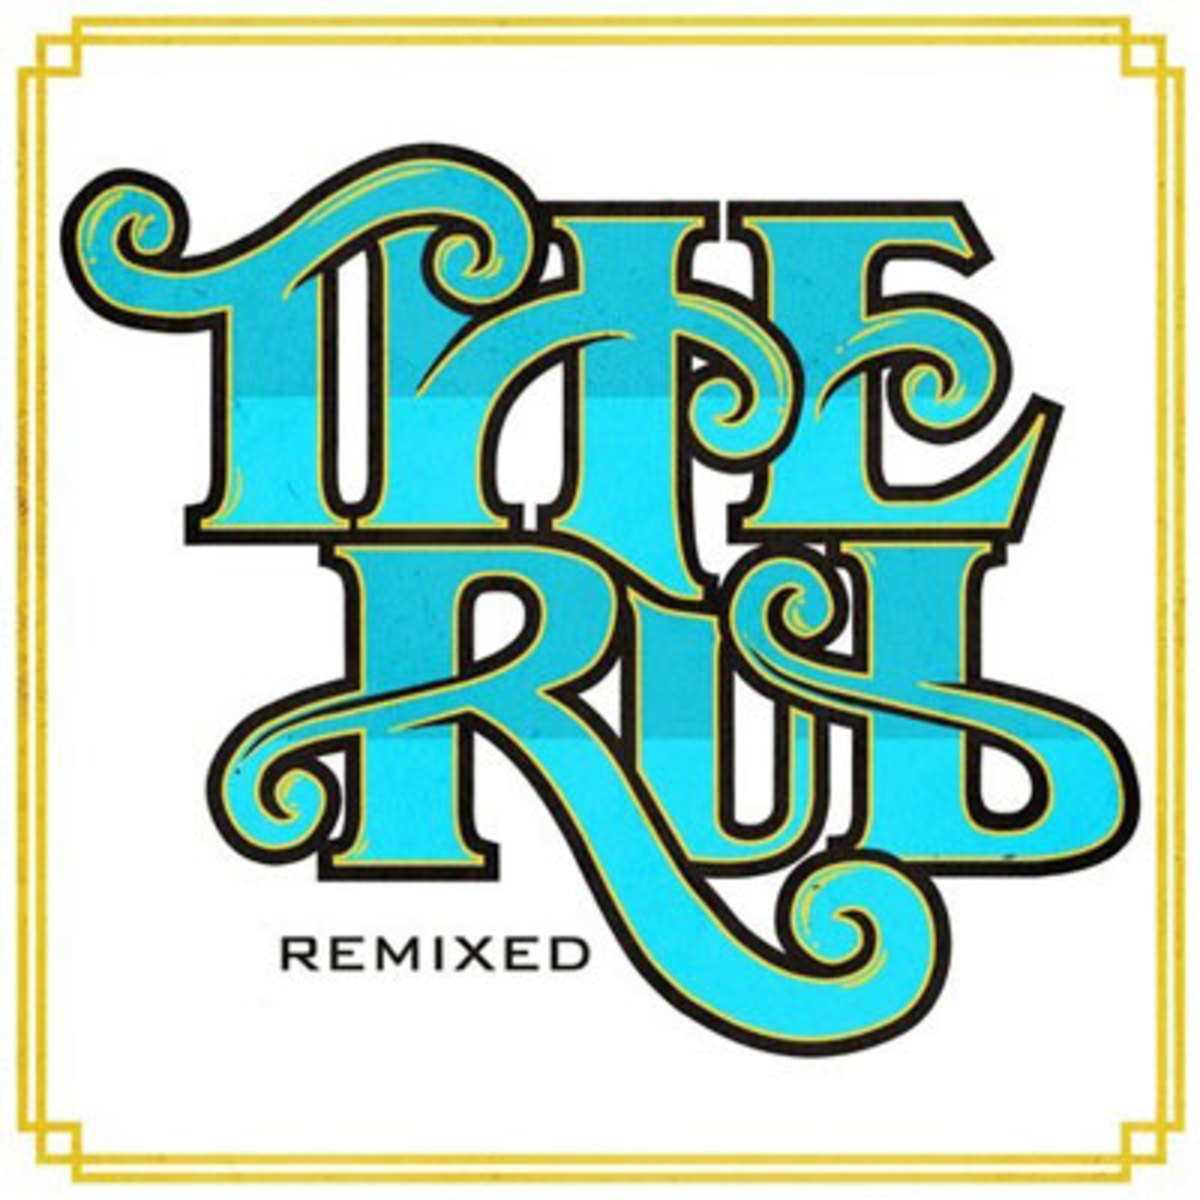 therub-remixed.jpg